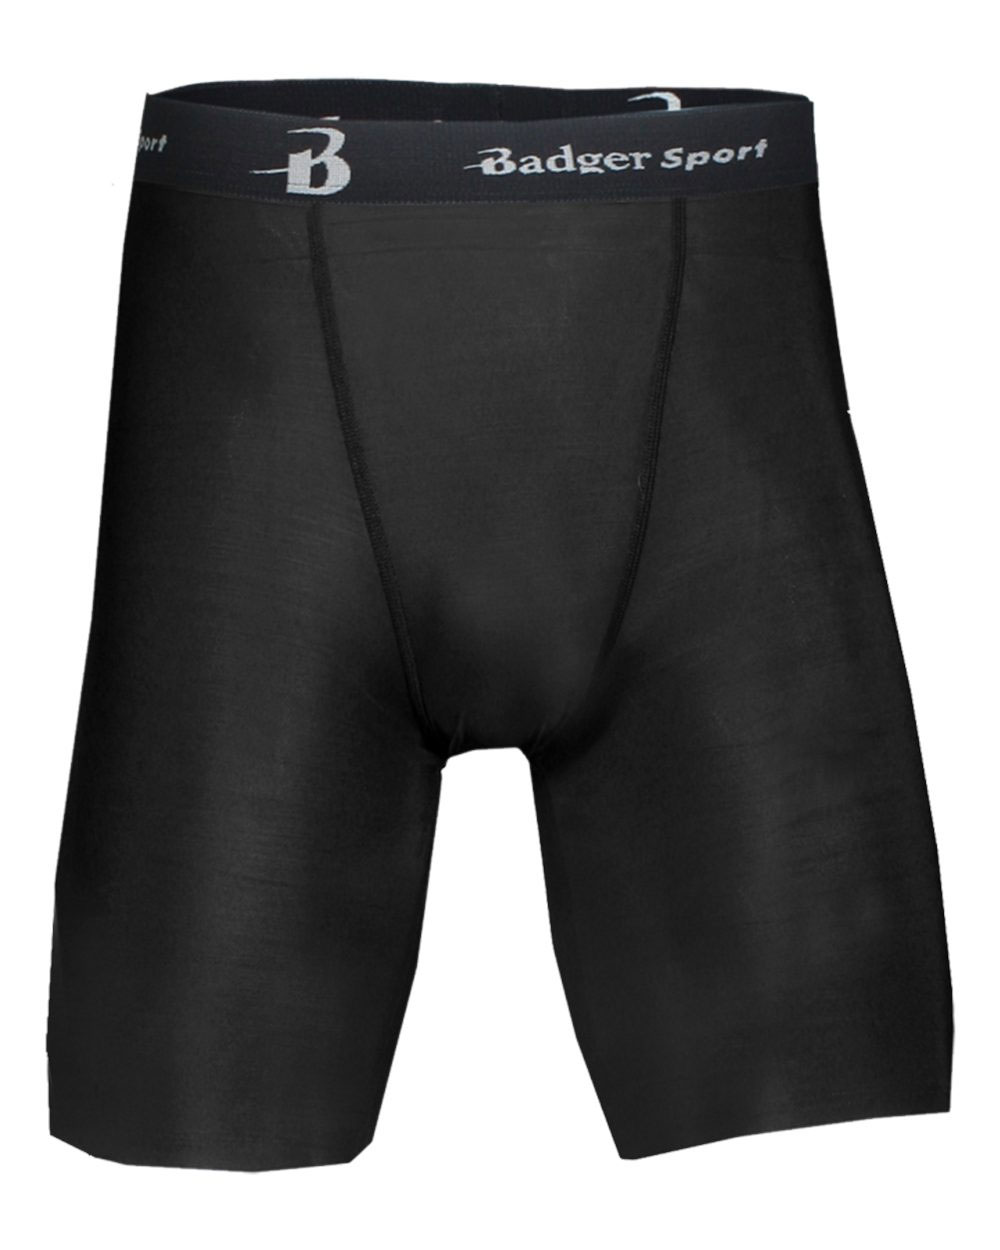 Badger Mens Compression Short